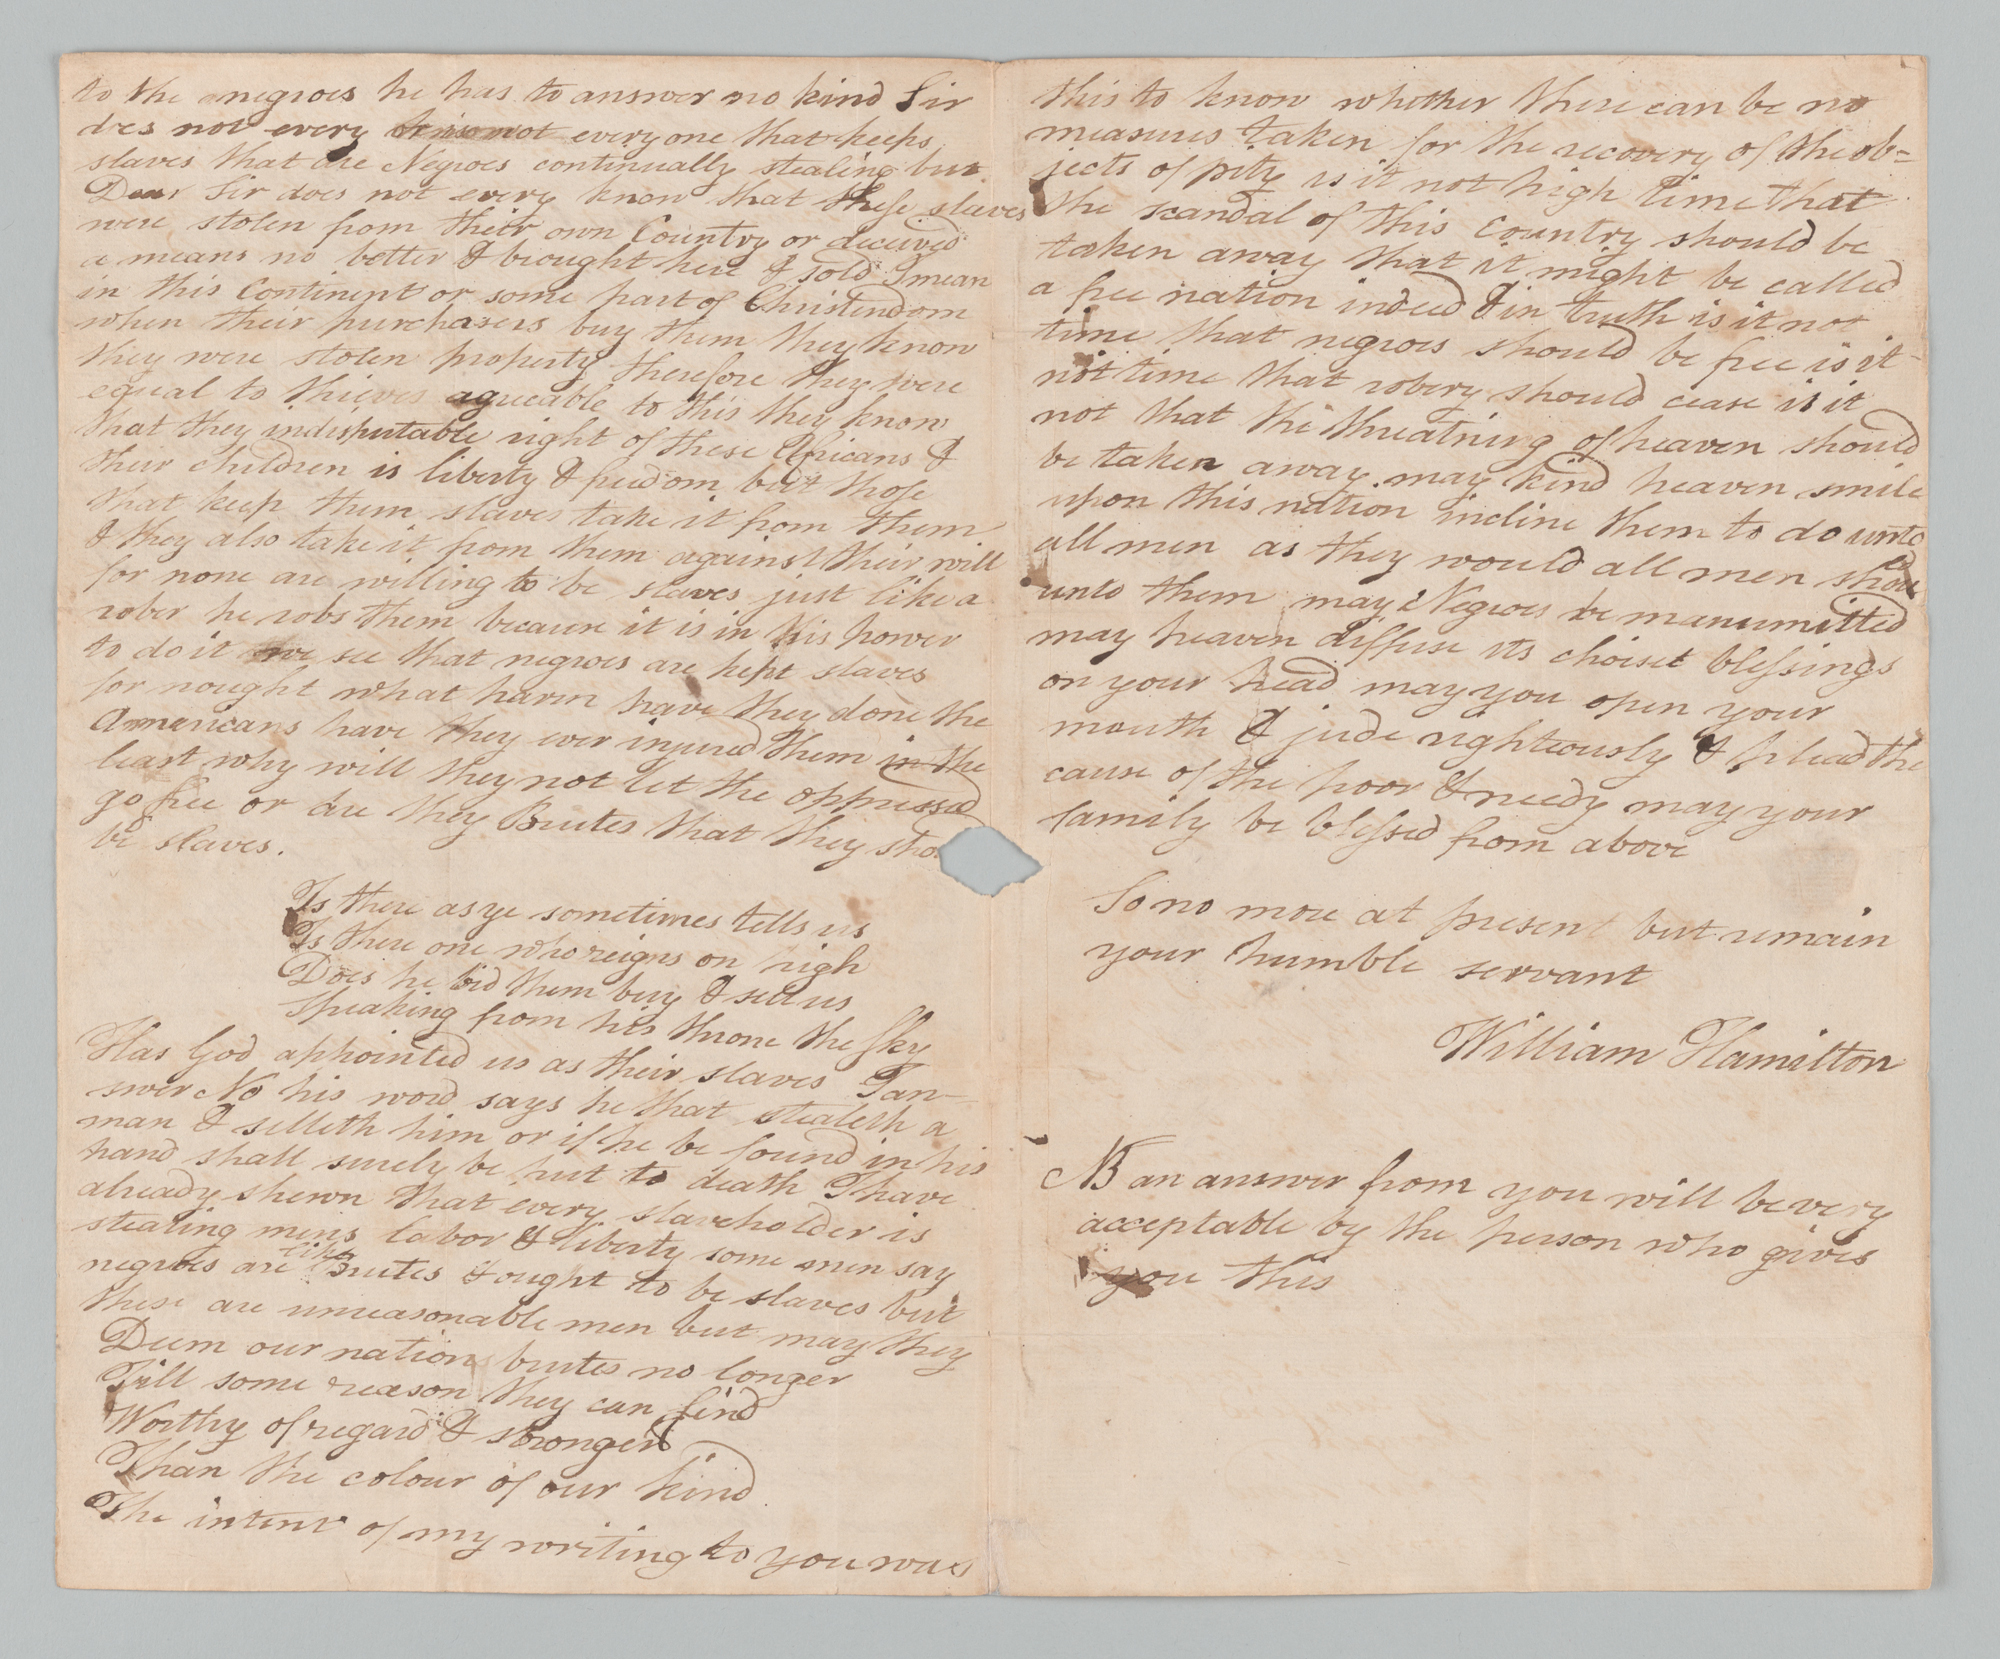 William Hamilton to John Jay, pages 2-3 (middle pages)/single sheet